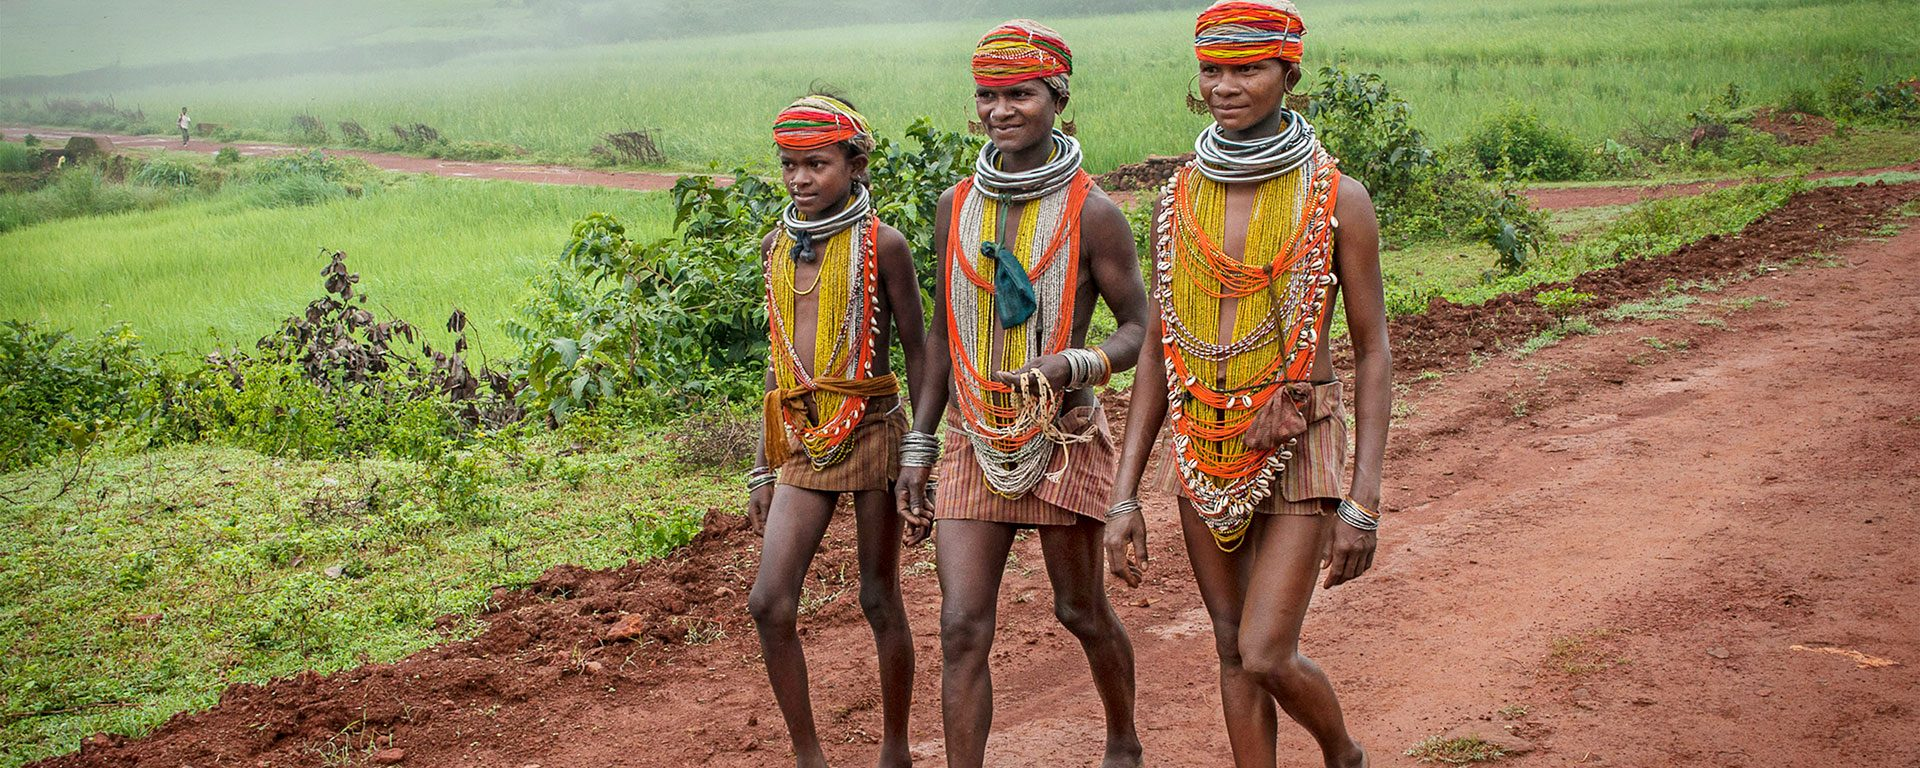 Three young Bonda women in beaded tribal dress walk down a red dirt road, India